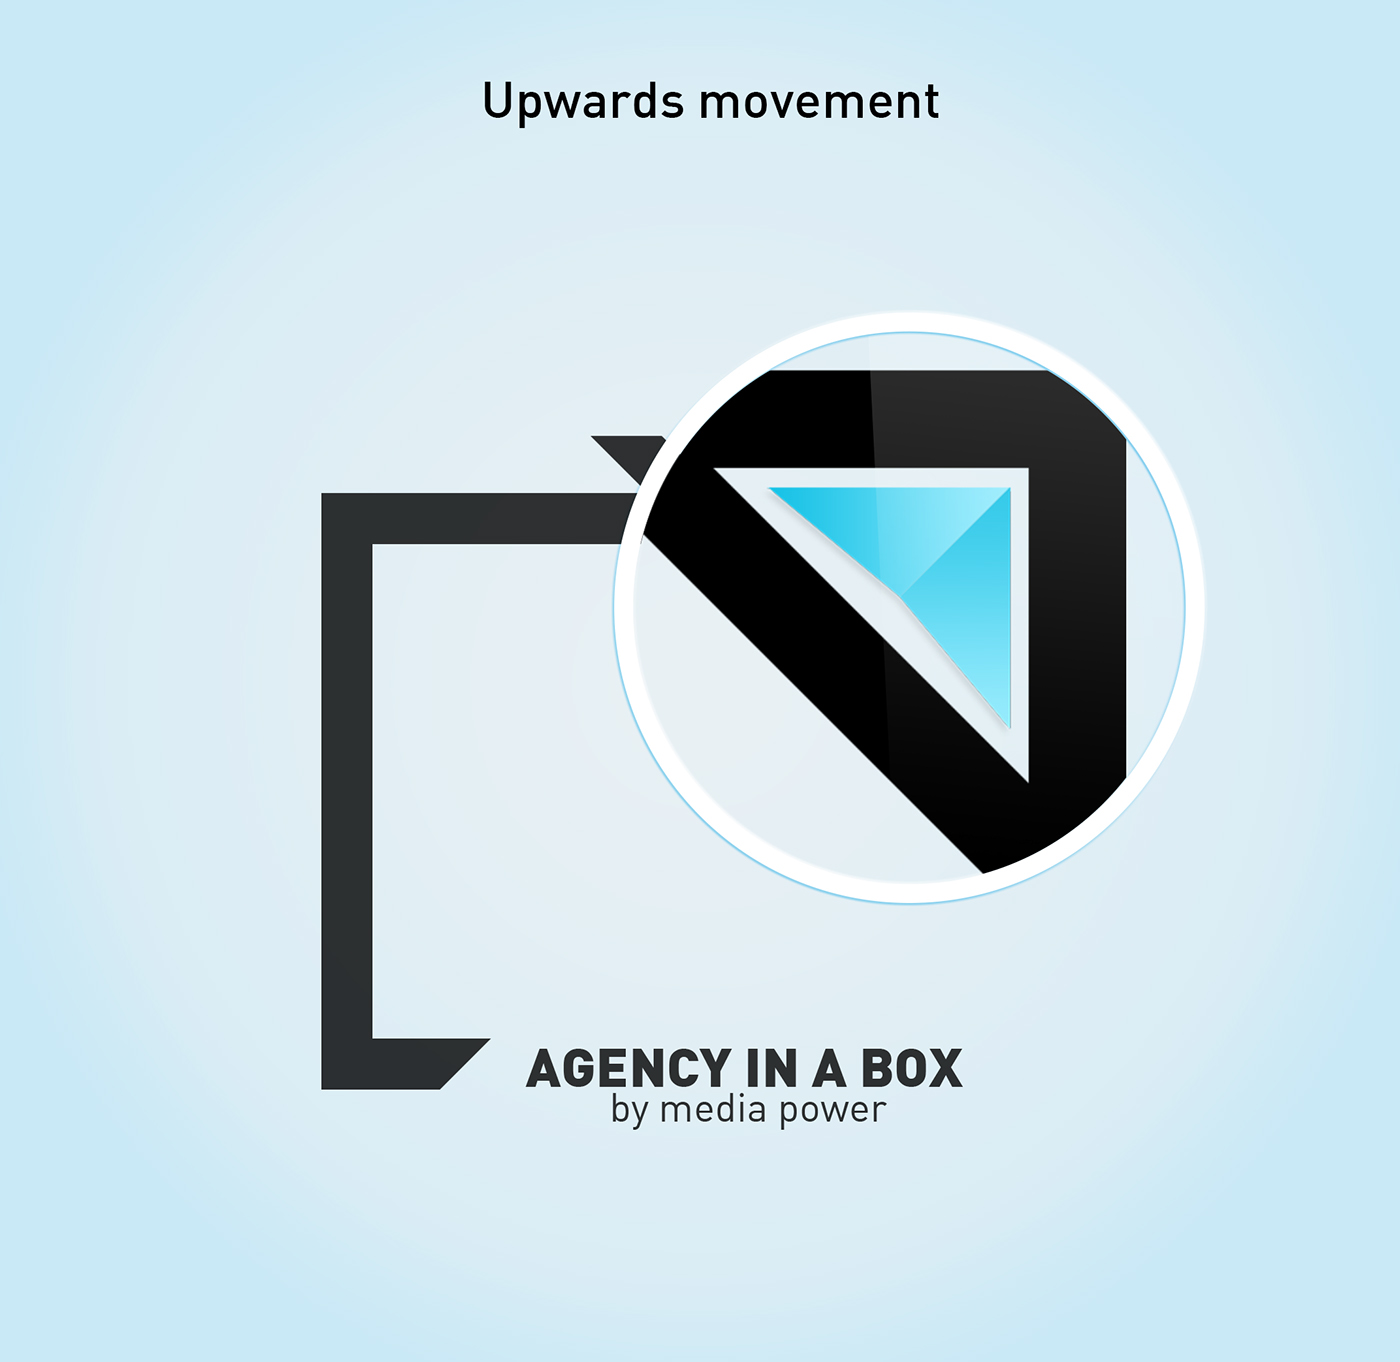 Agency in a box